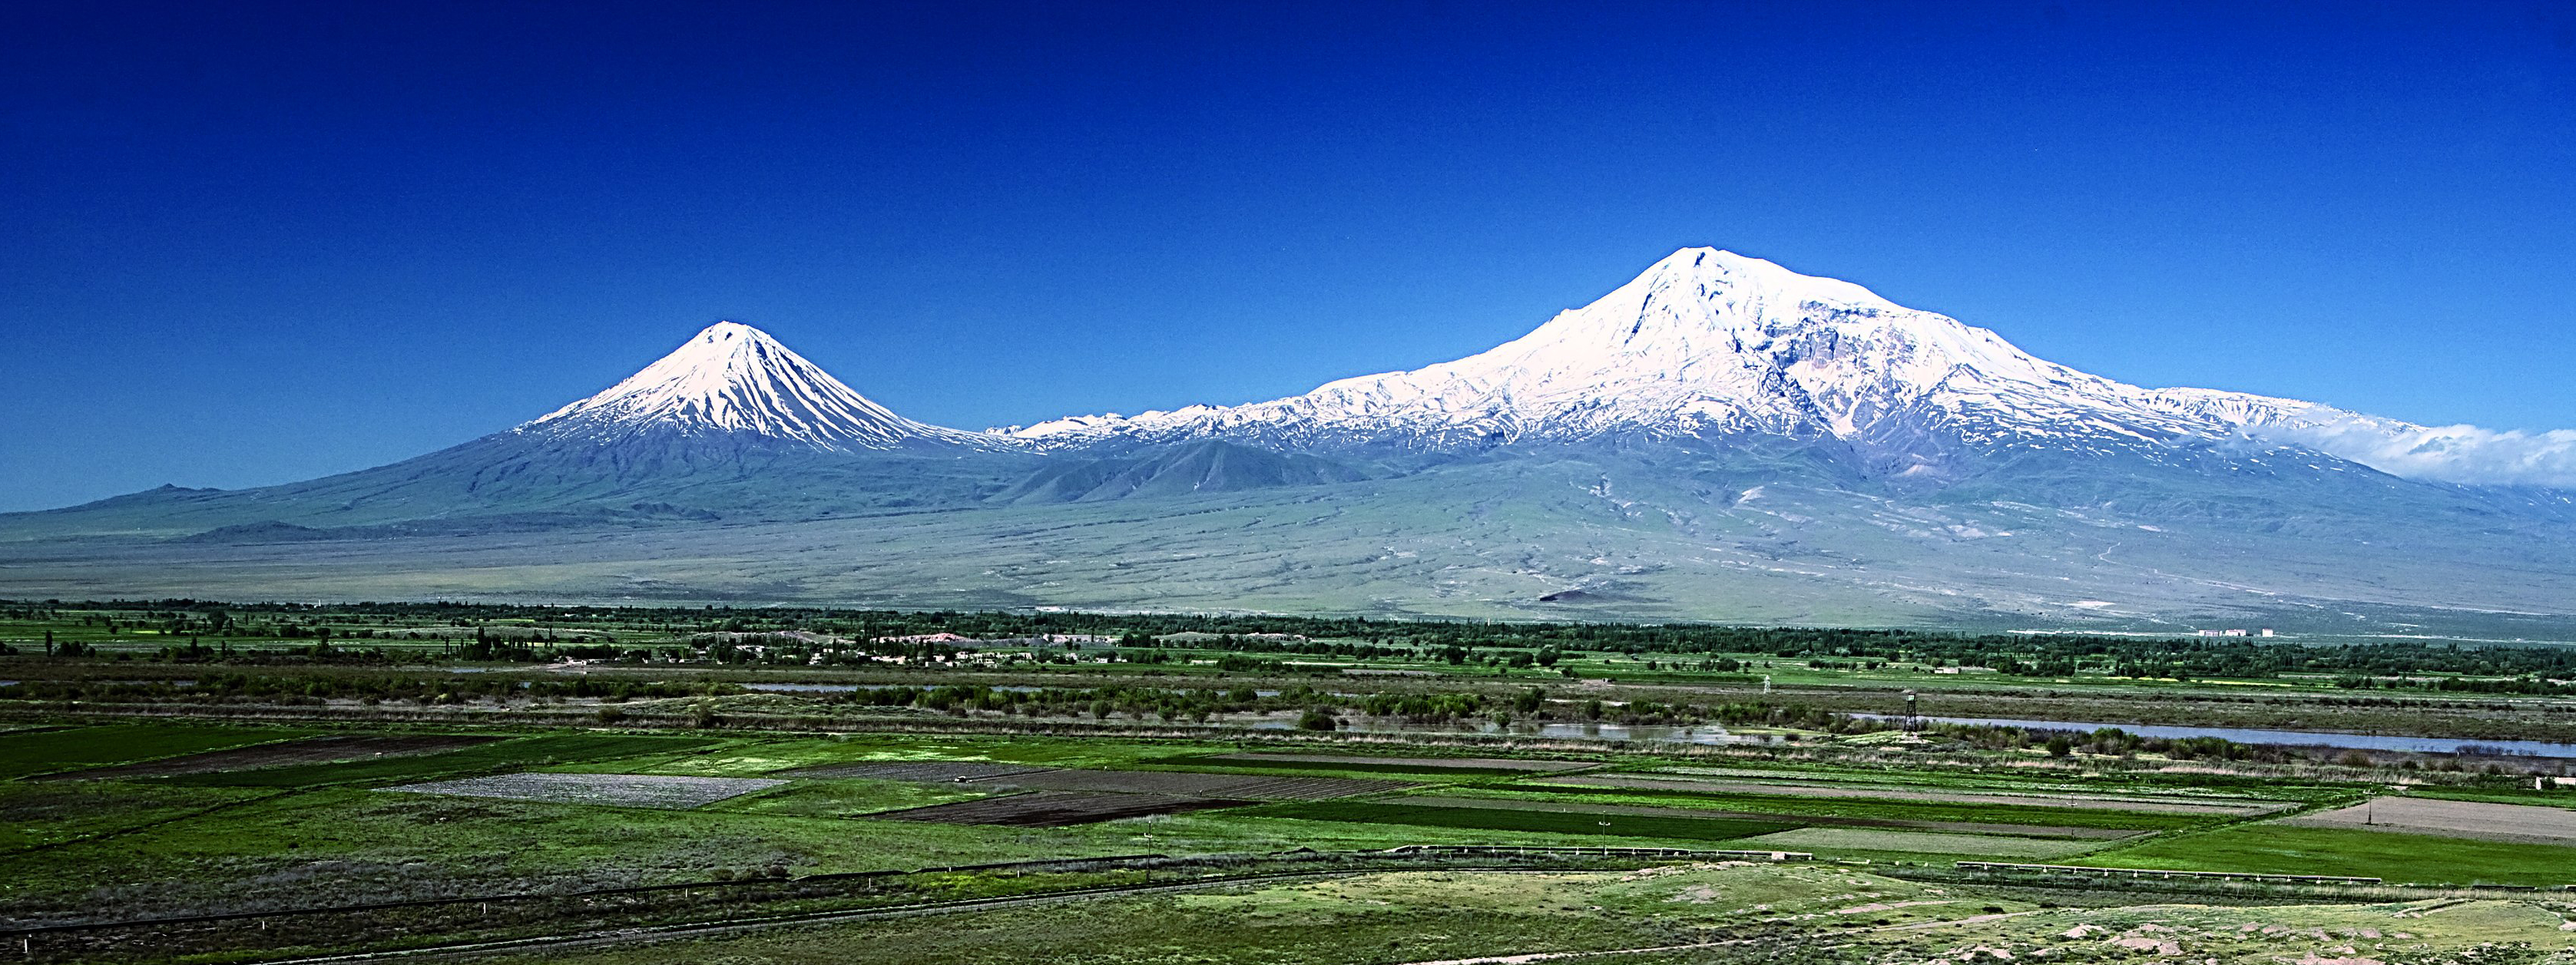 ararat dating Searches for noah's ark have been made from of noah is embedded in ice high atop mount ararat international reported carbon dating suggests the wood is.